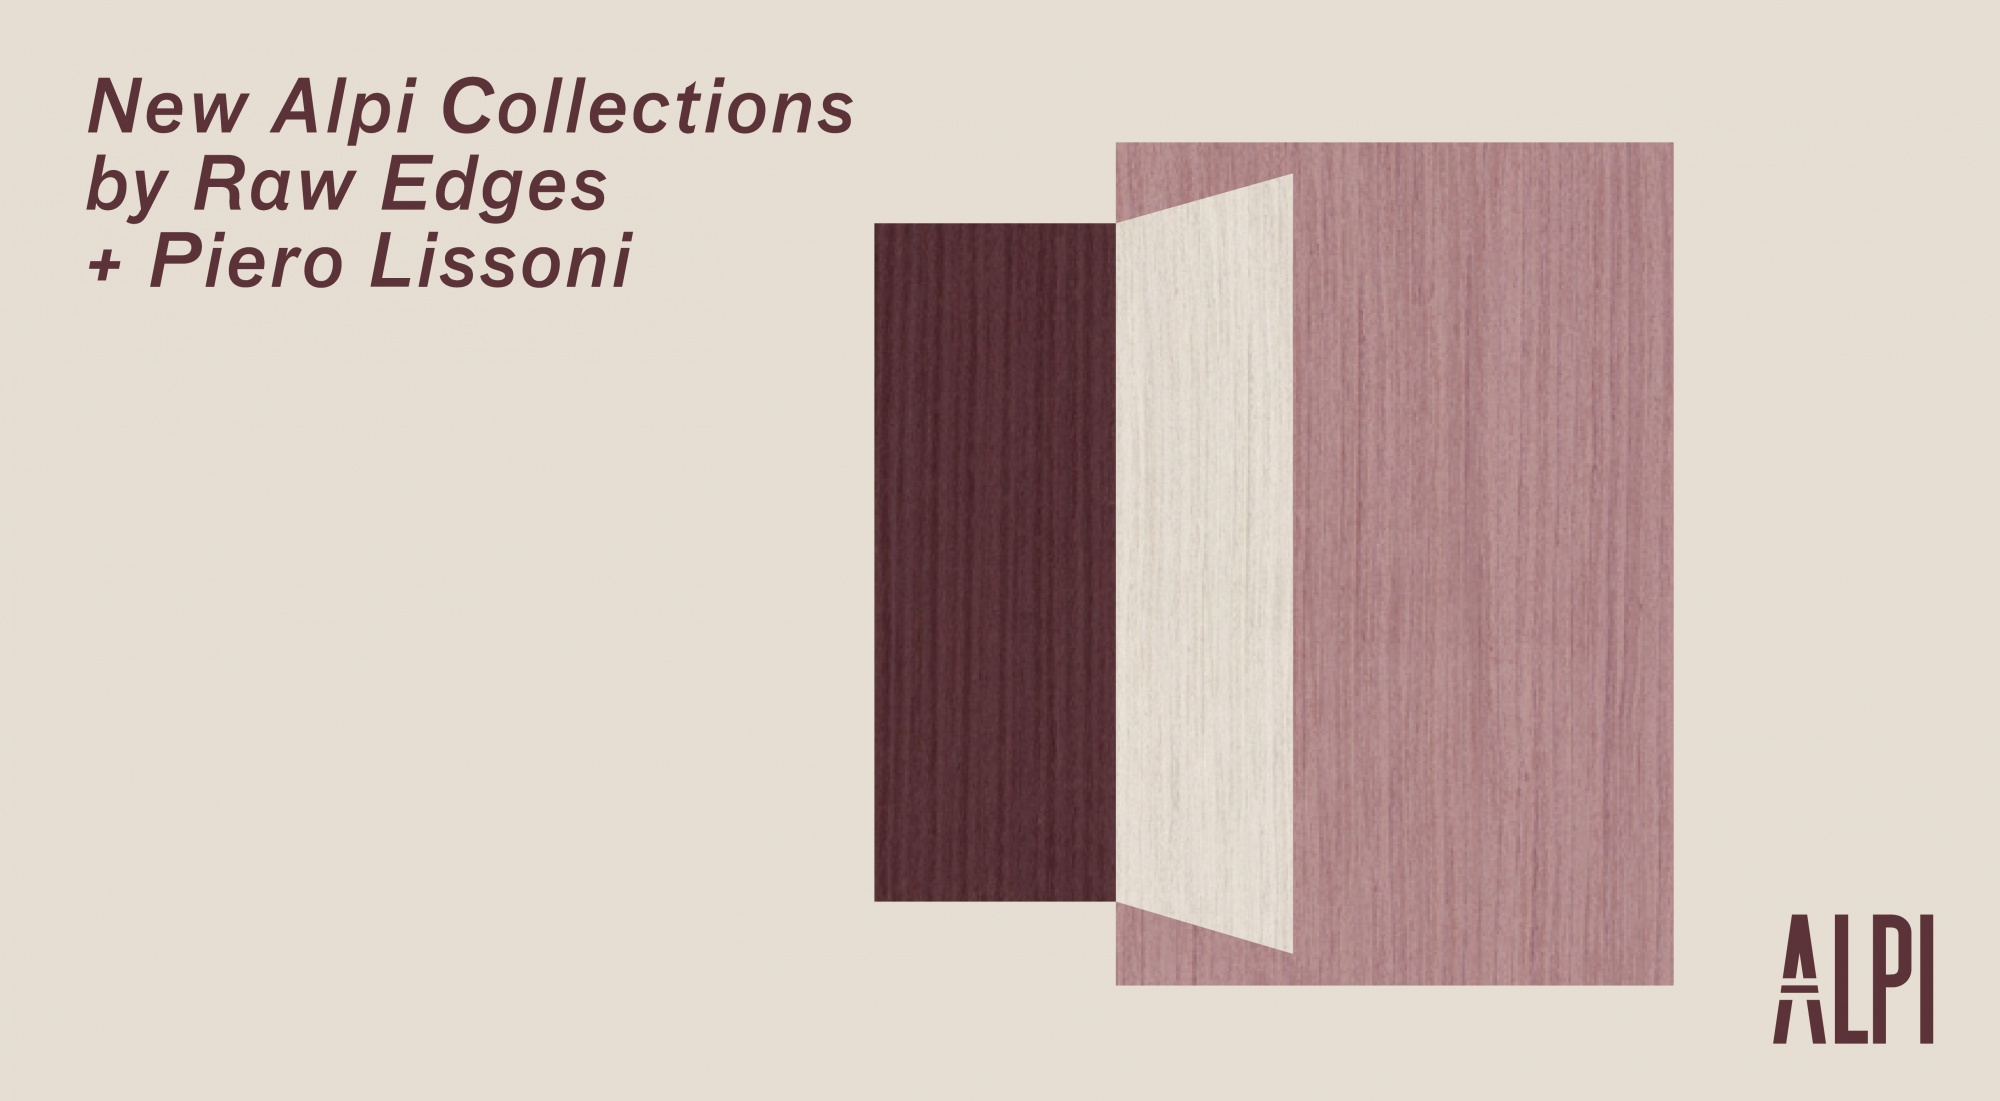 New Alpi Collections by Raw Edges + Piero Lissoni